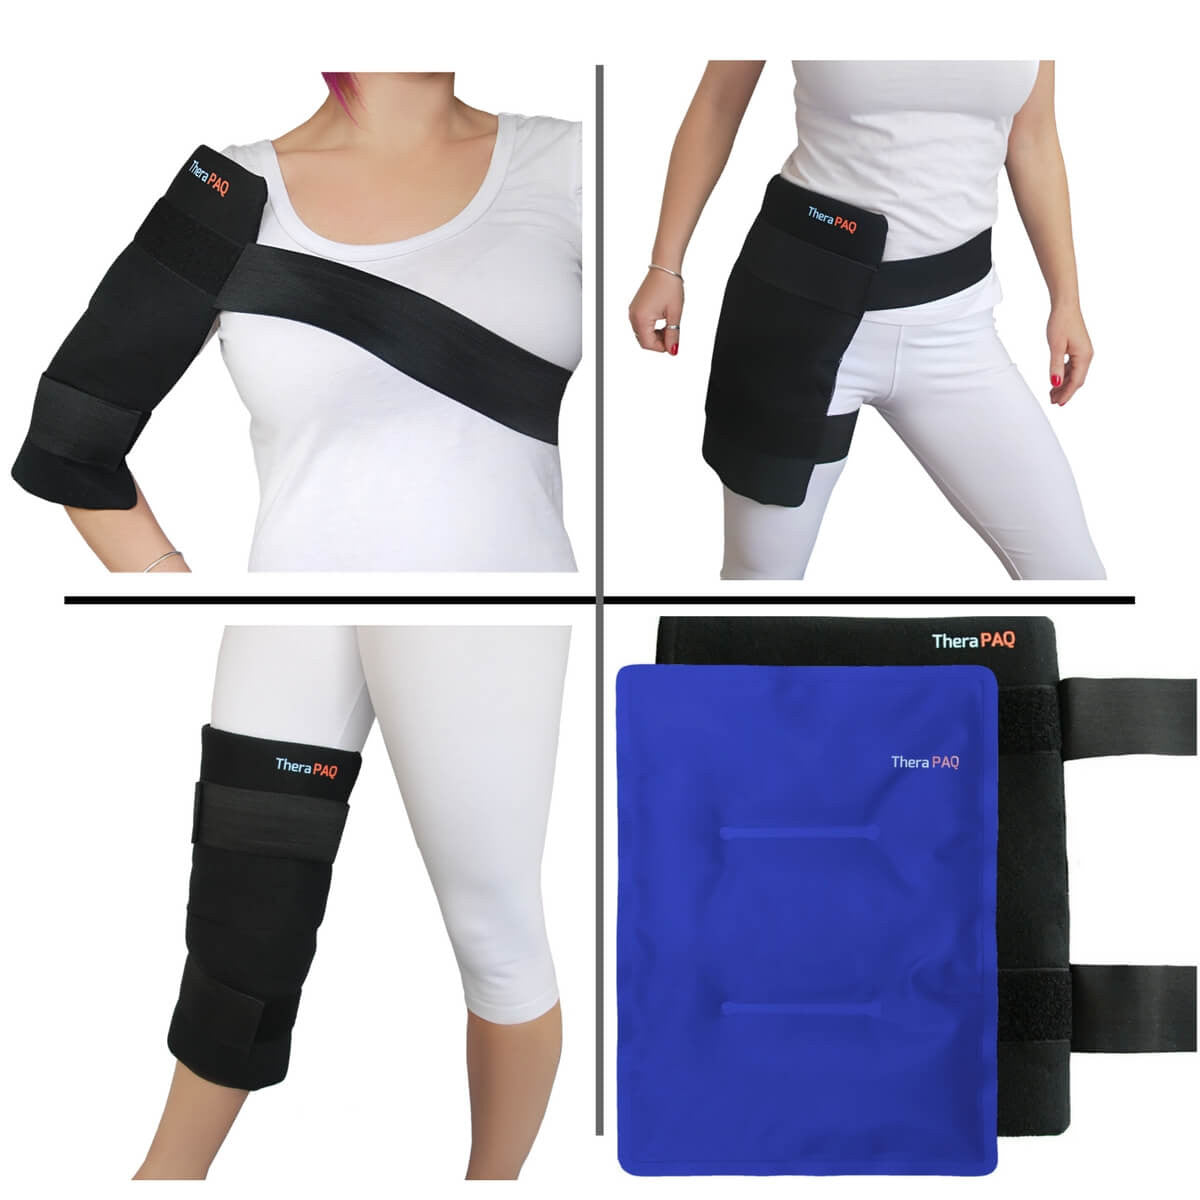 Large Pain Relief Ice Pack with Wrap by TheraPAQ for Hot / Cold Therapy - Fits Hip, Shoulder, Knee, Thigh, Shins & Calves